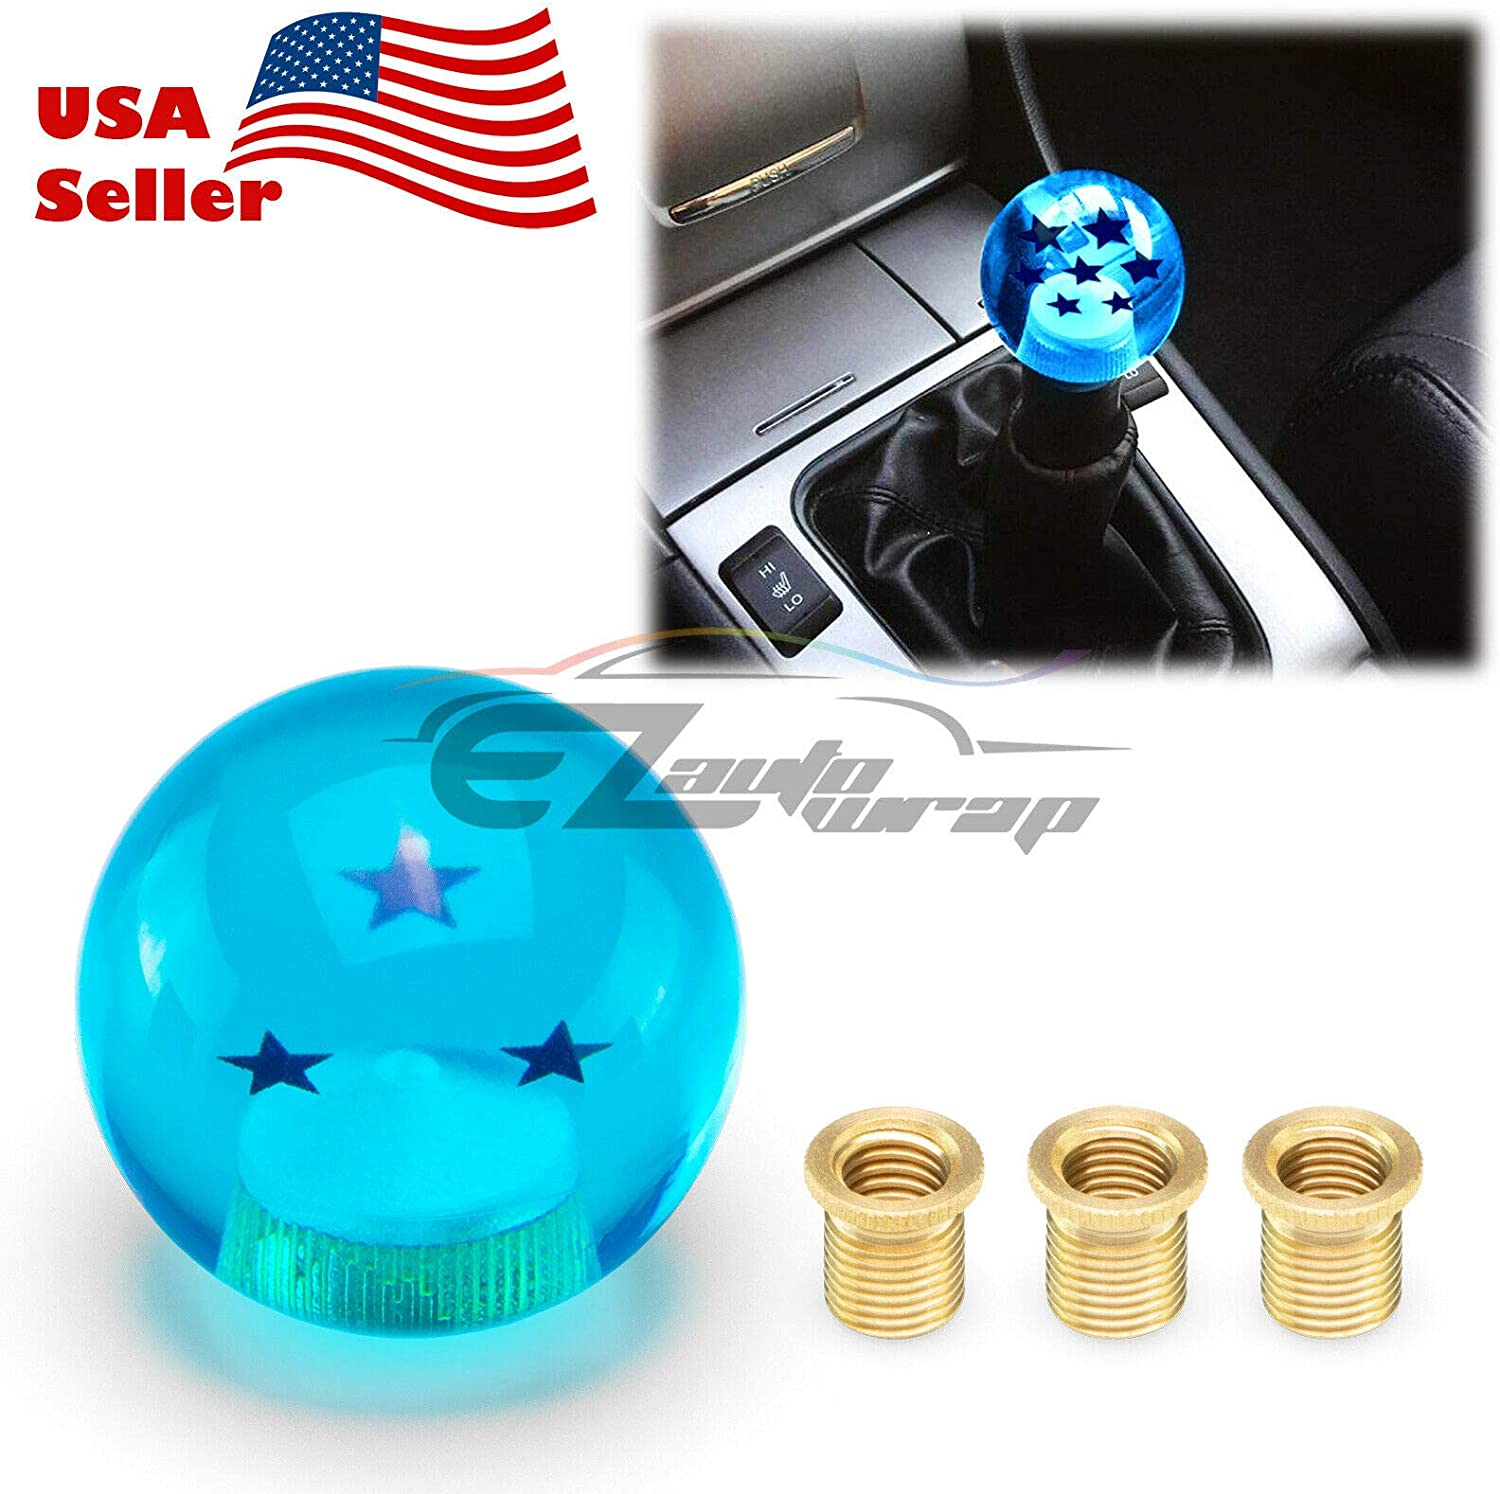 EZAUTOWRAP Universal Blue Dragon Ball Z 7 Star 54mm Shift Knob with Adapters Will Fit Most Cars